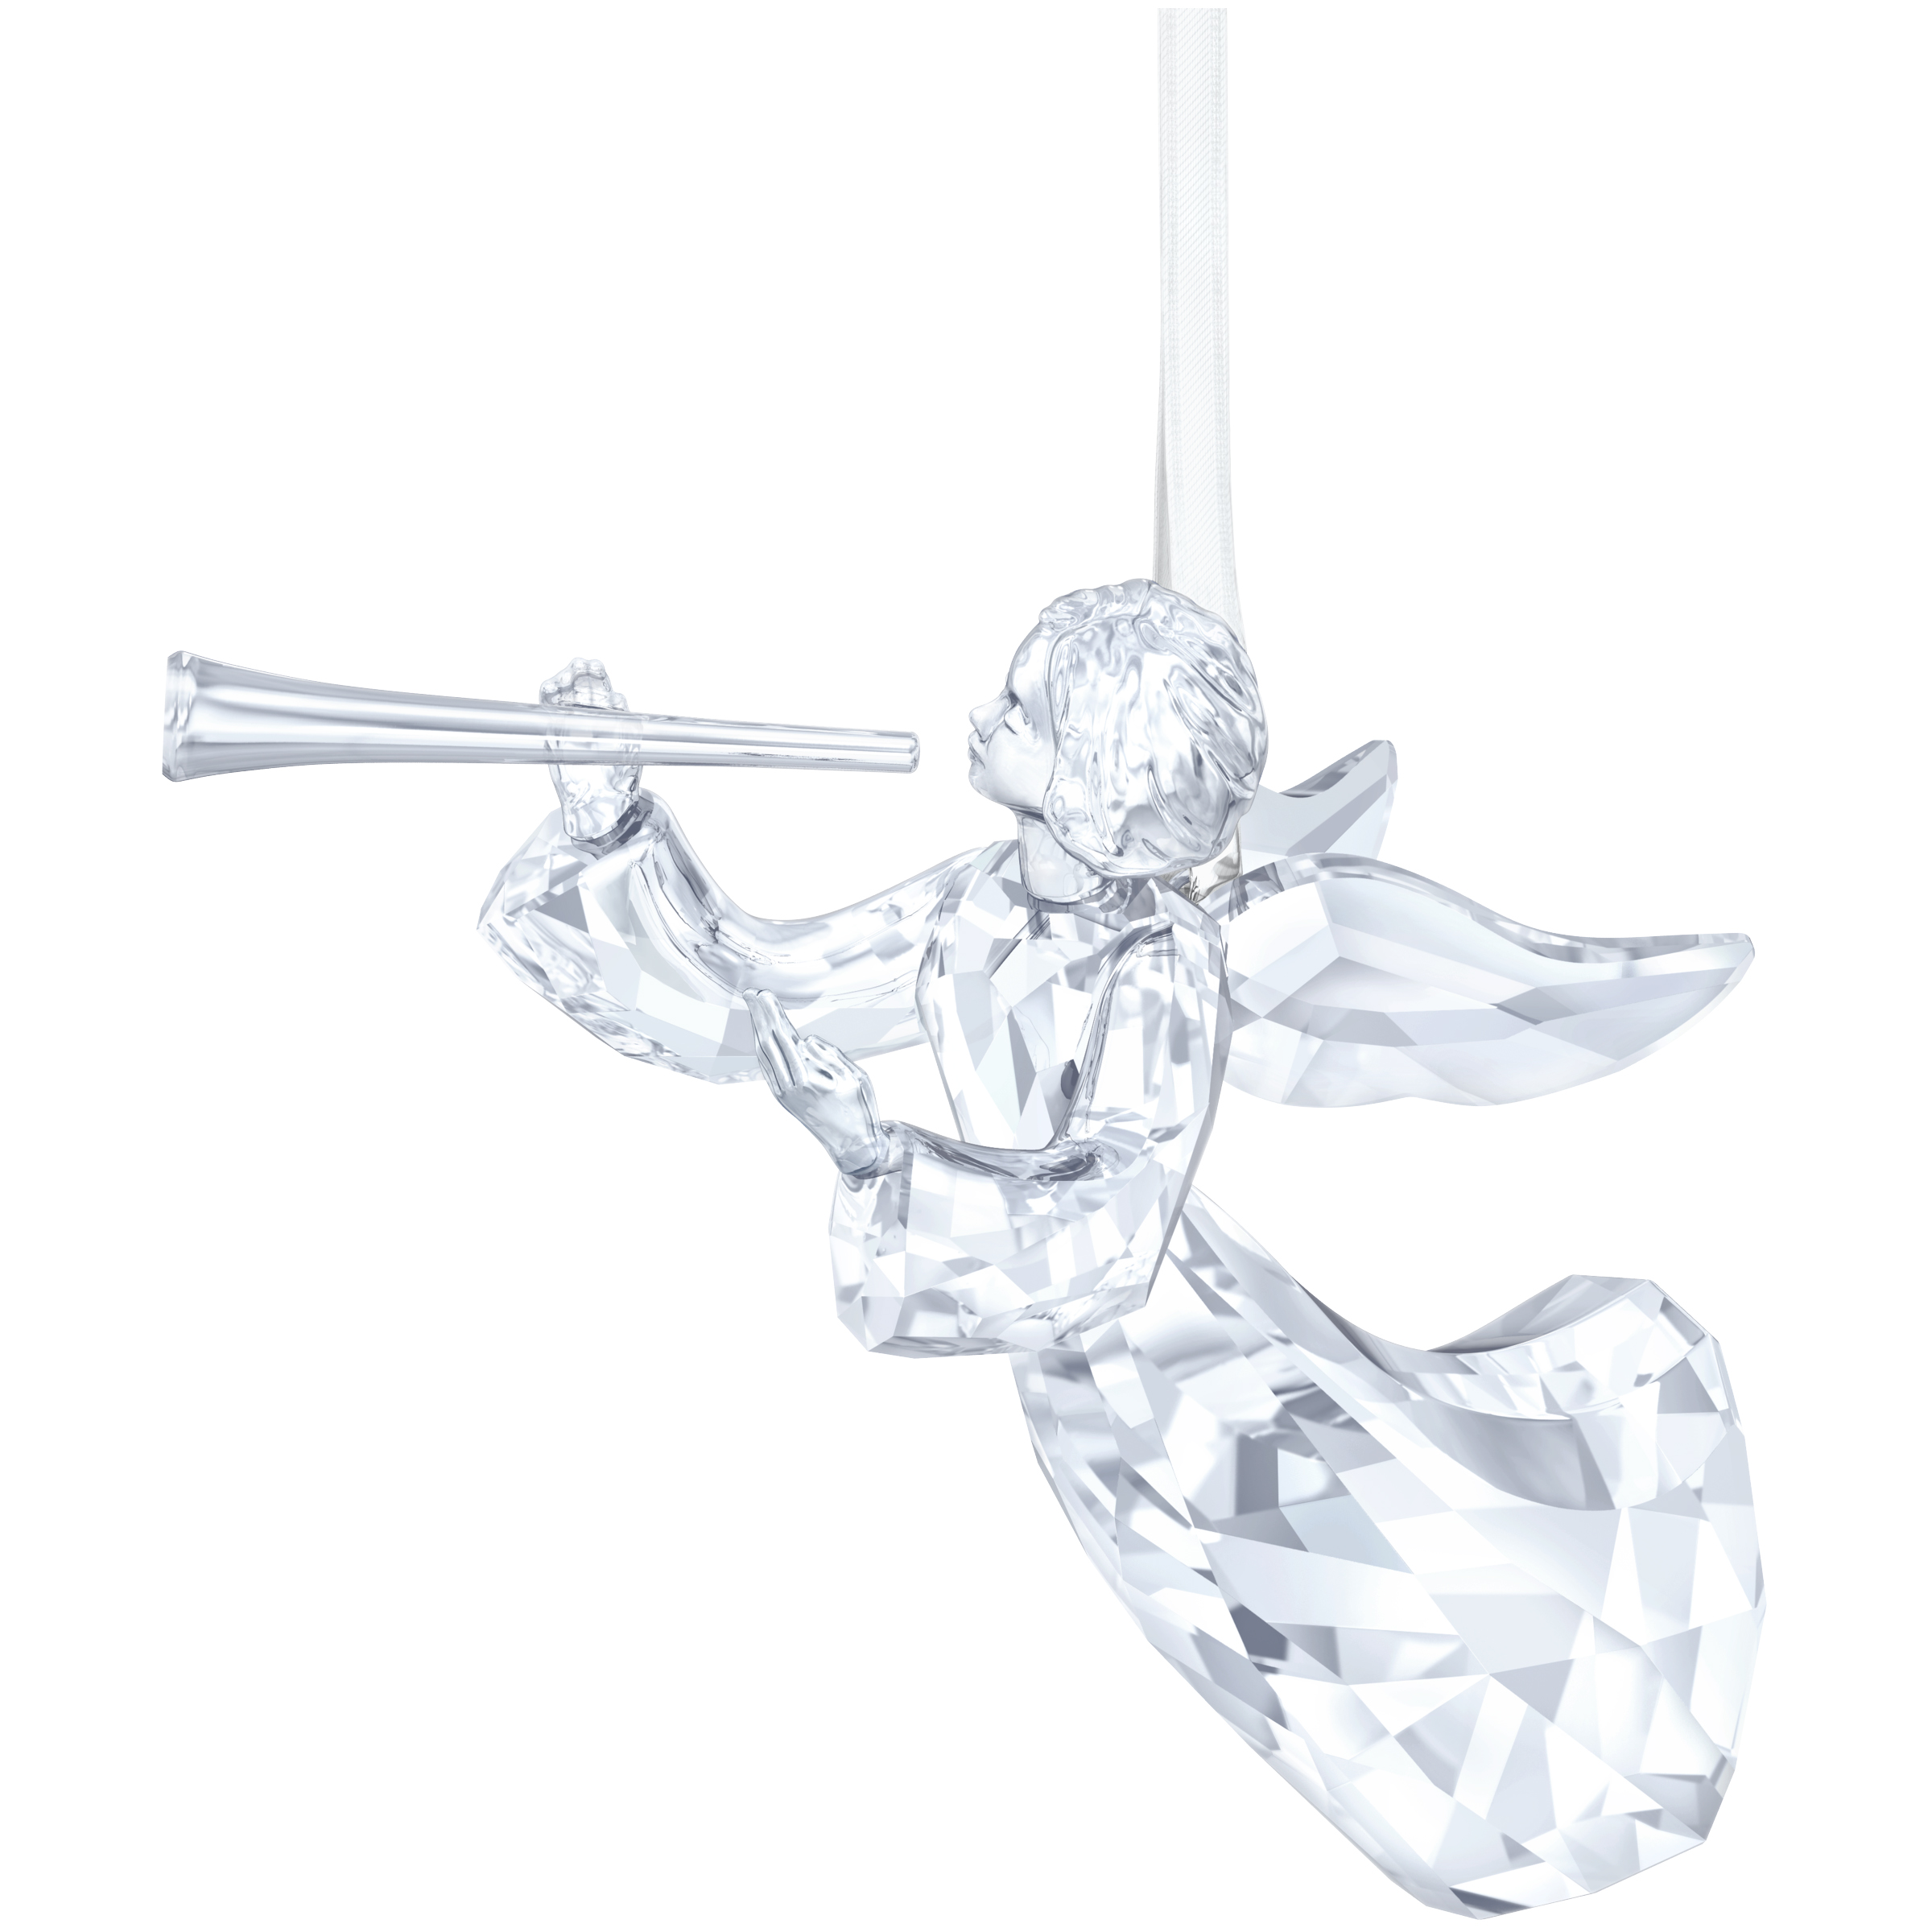 Swarovski christmas ornament 2004 - Swarovski 2016 Angel Annual Edition Ornament 5215541